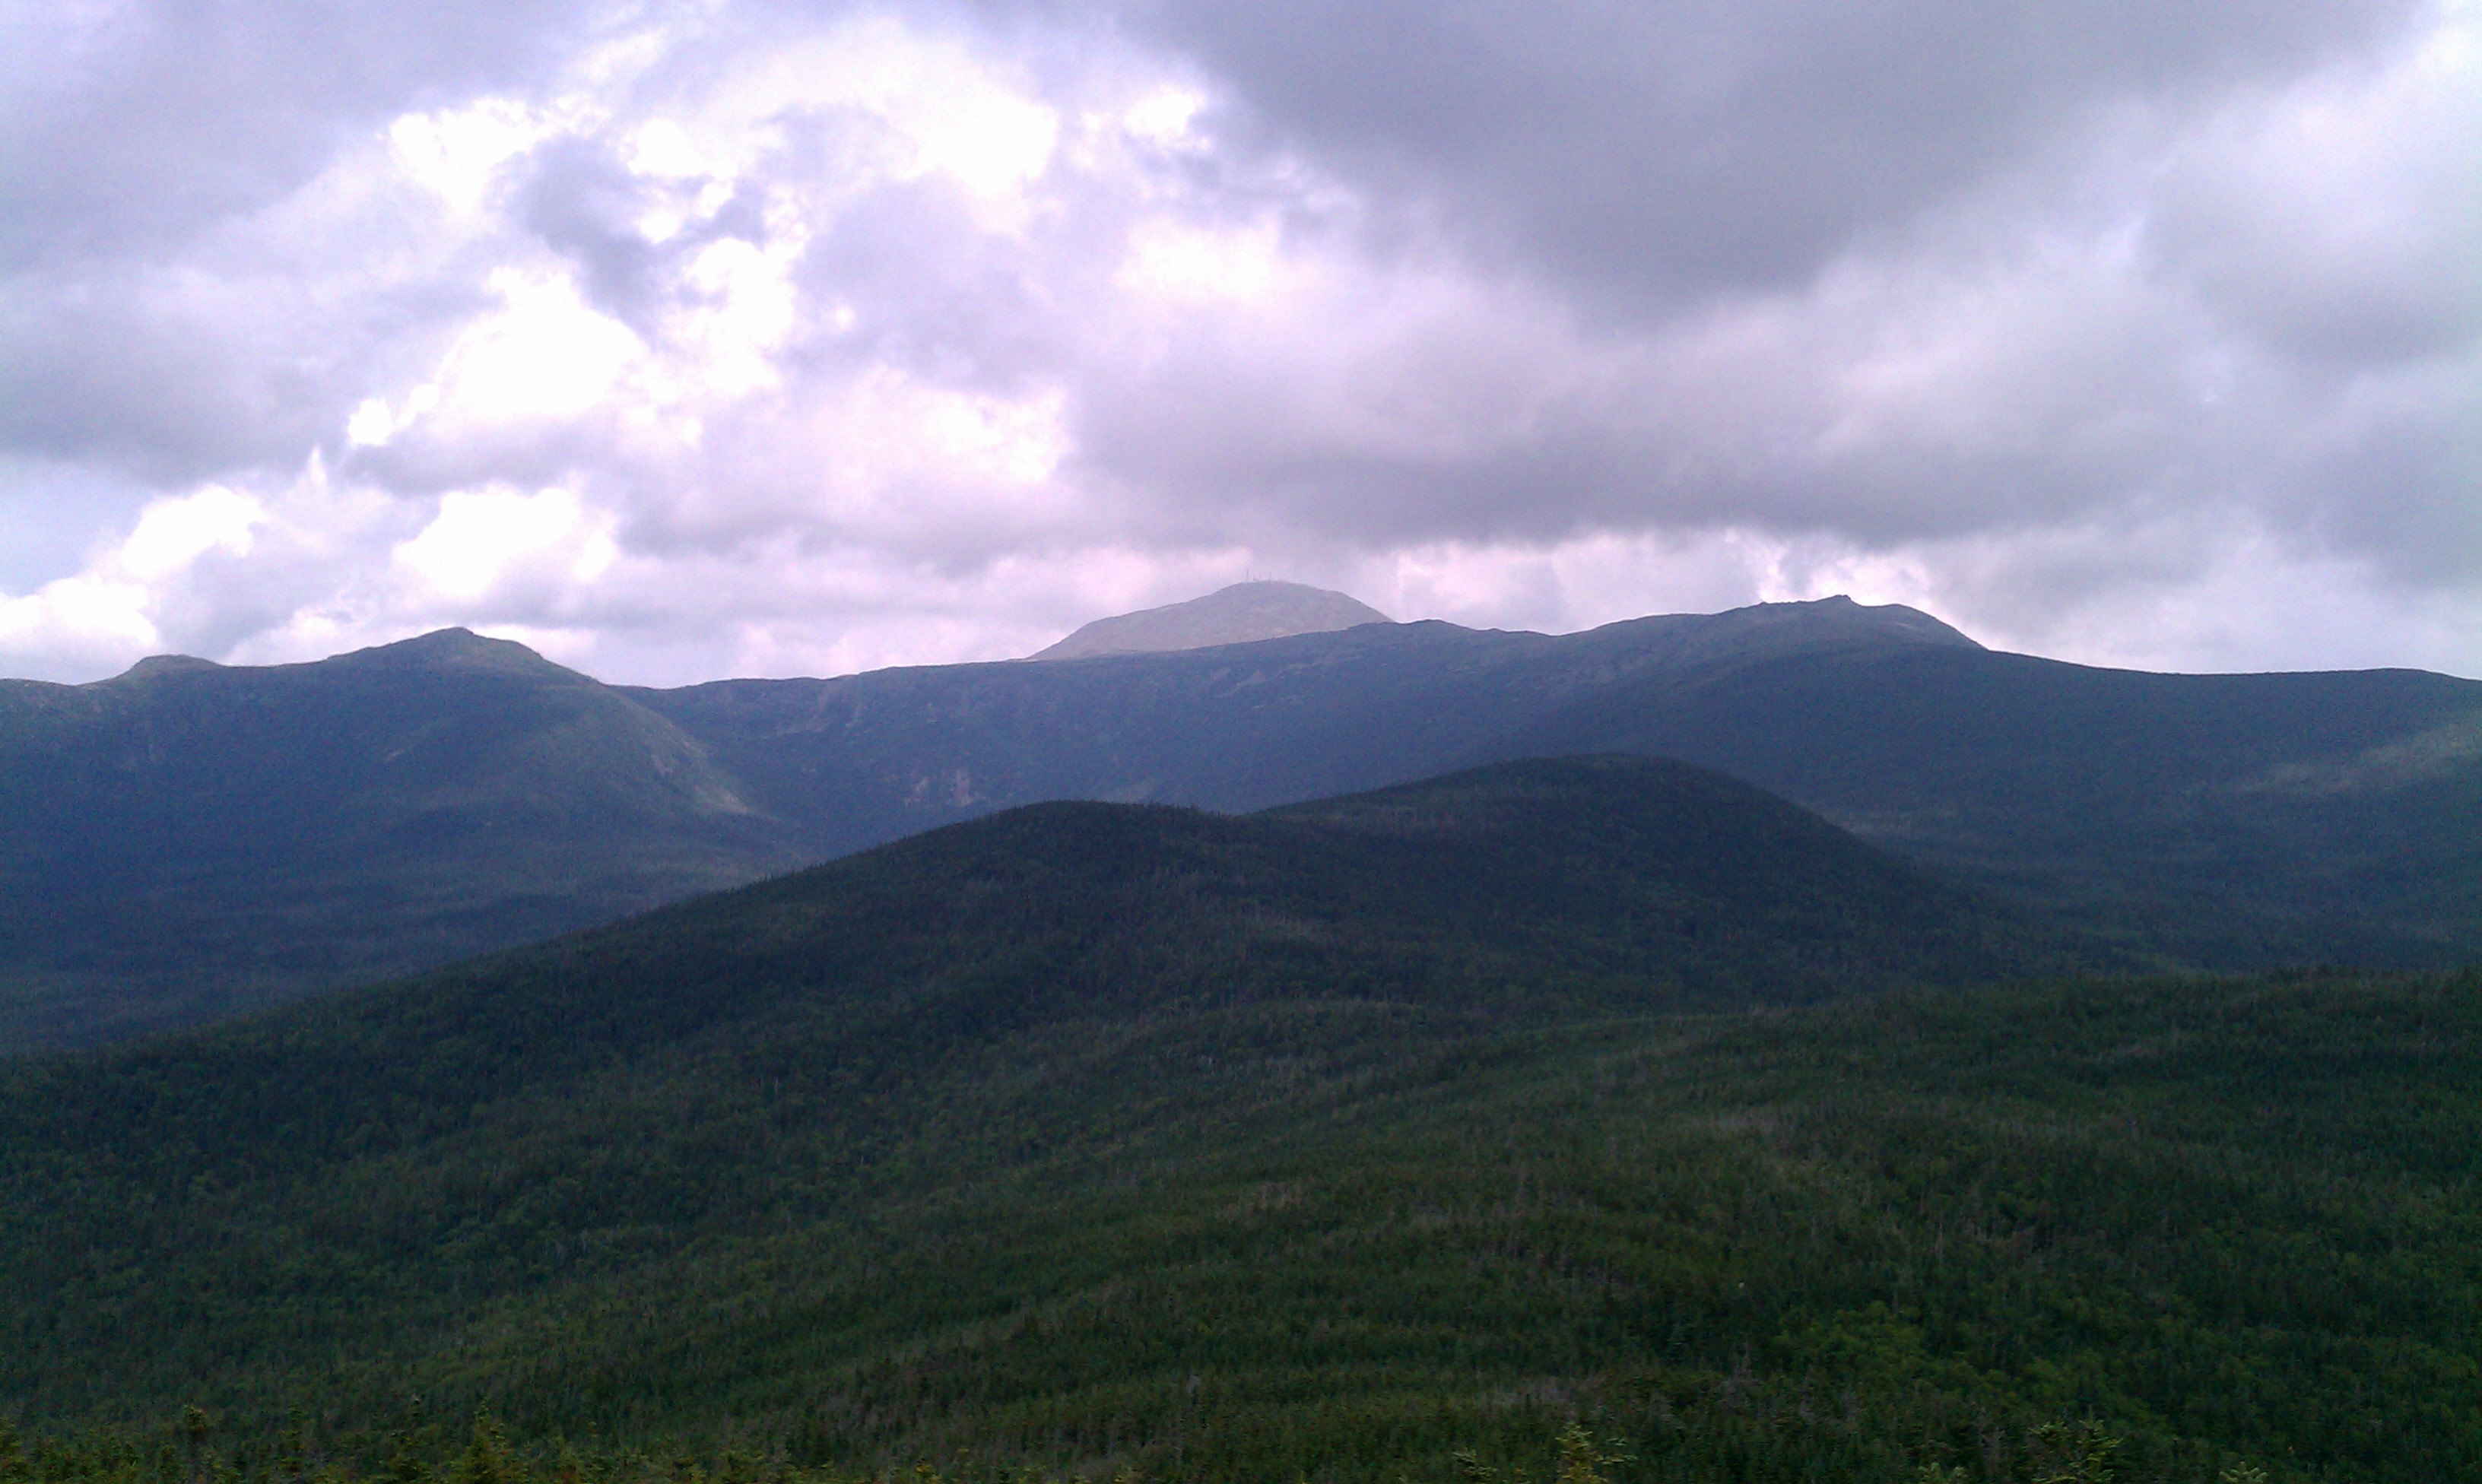 View of Mt. Washington from Mt. Isolation